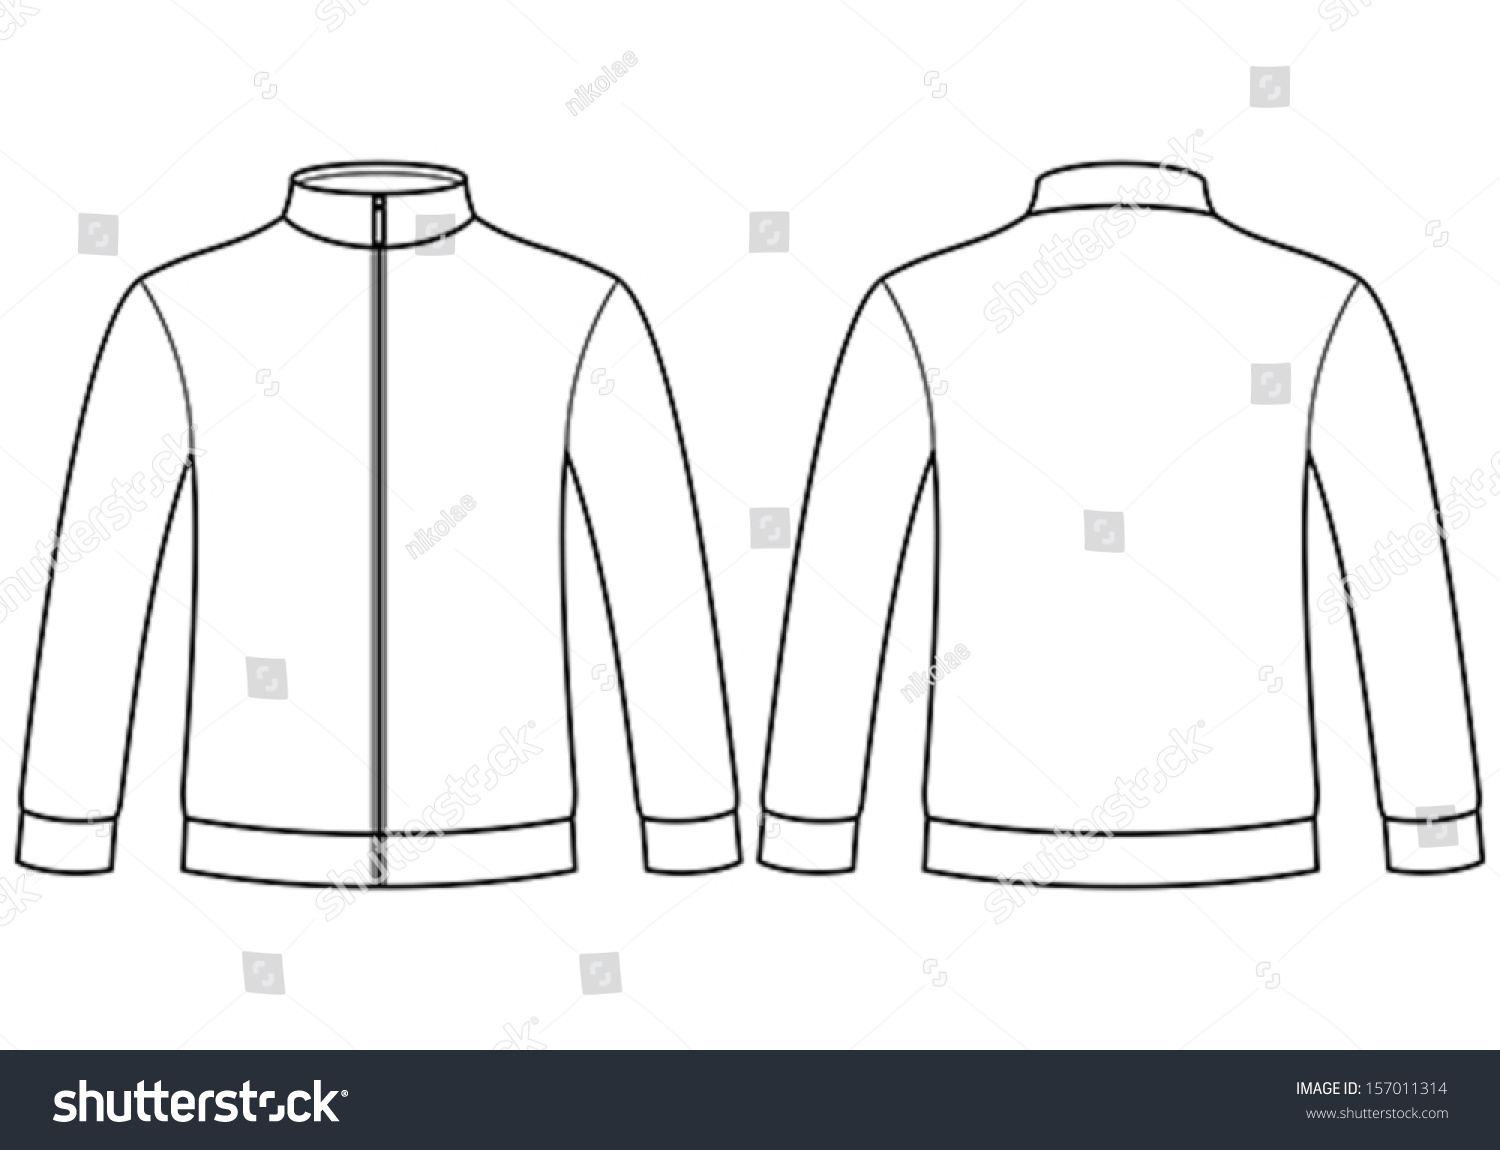 Blank Vector Calendar Template : Blank sweatshirt template isolated on white stock vector